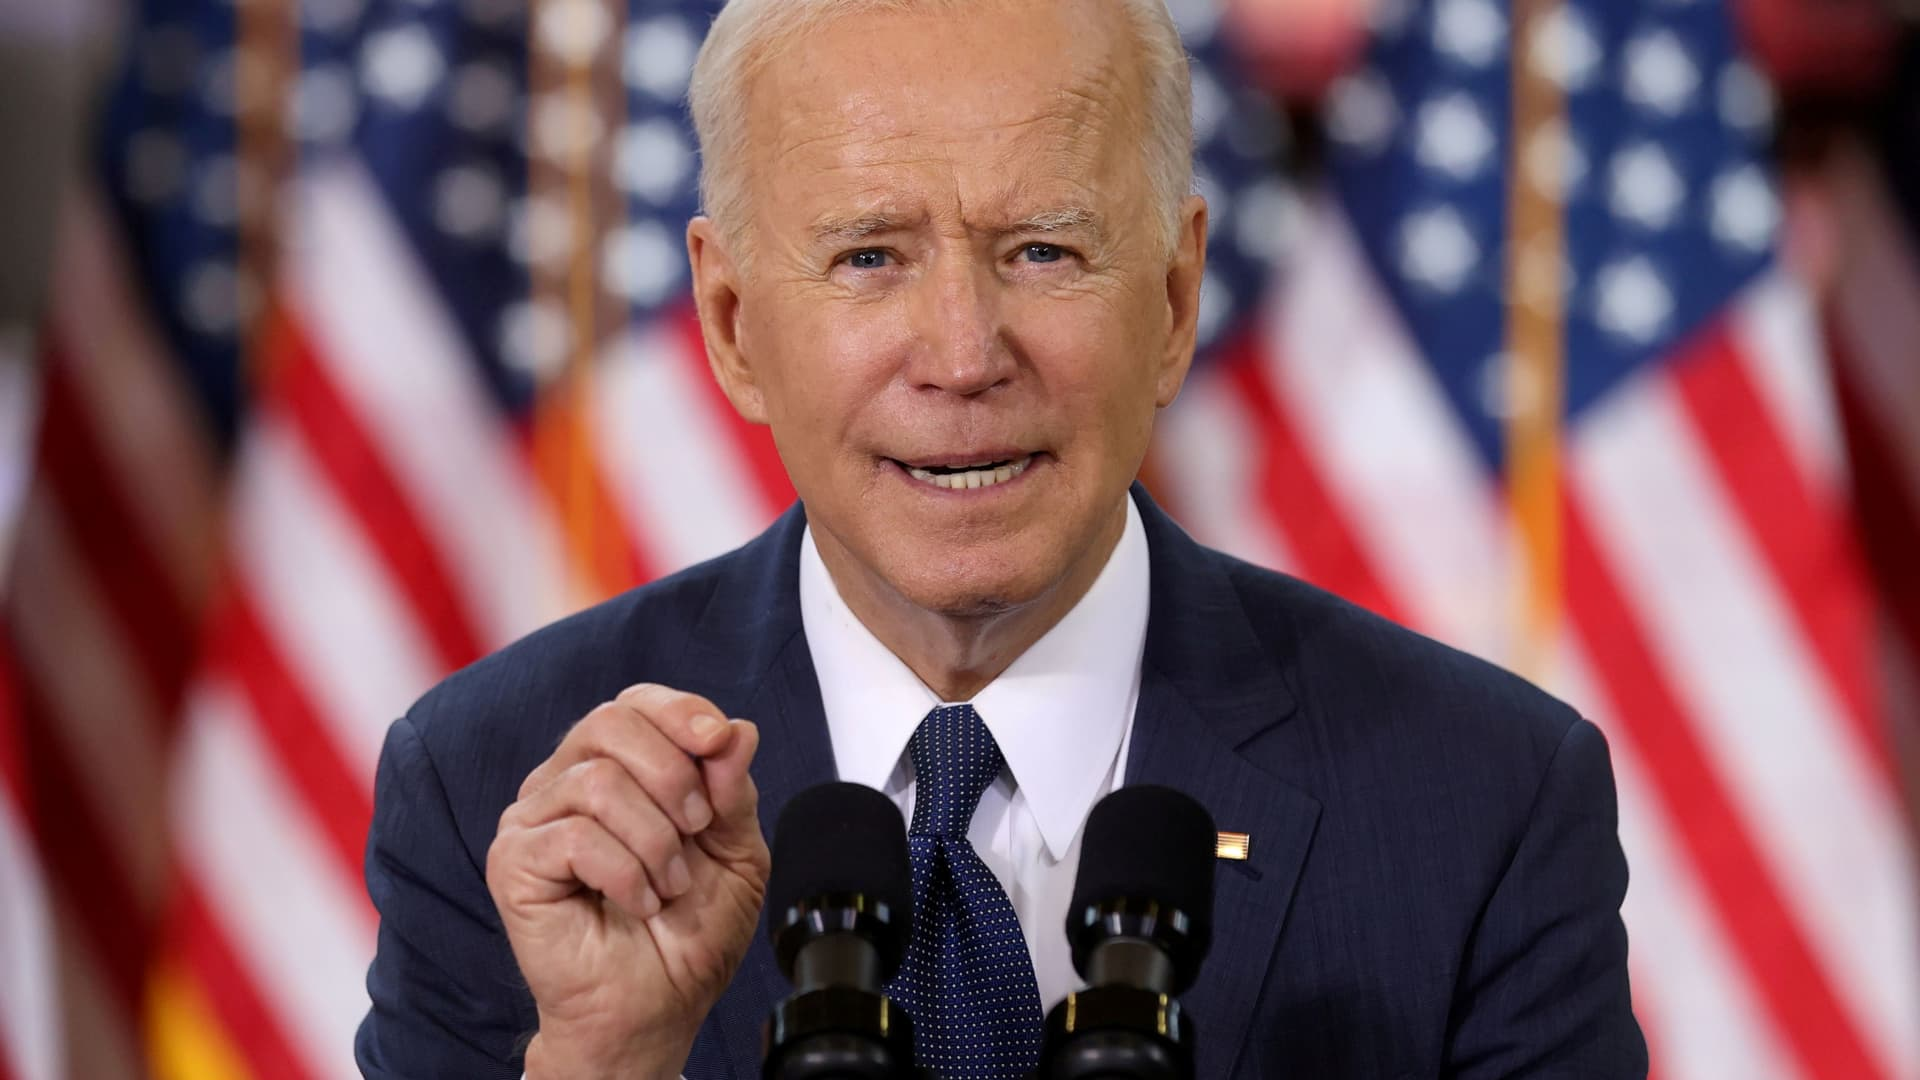 U.S. President Joe Biden speaks about his $2 trillion infrastructure plan during an event to tout the plan at Carpenters Pittsburgh Training Center in Pittsburgh, Pennsylvania, March 31, 2021.